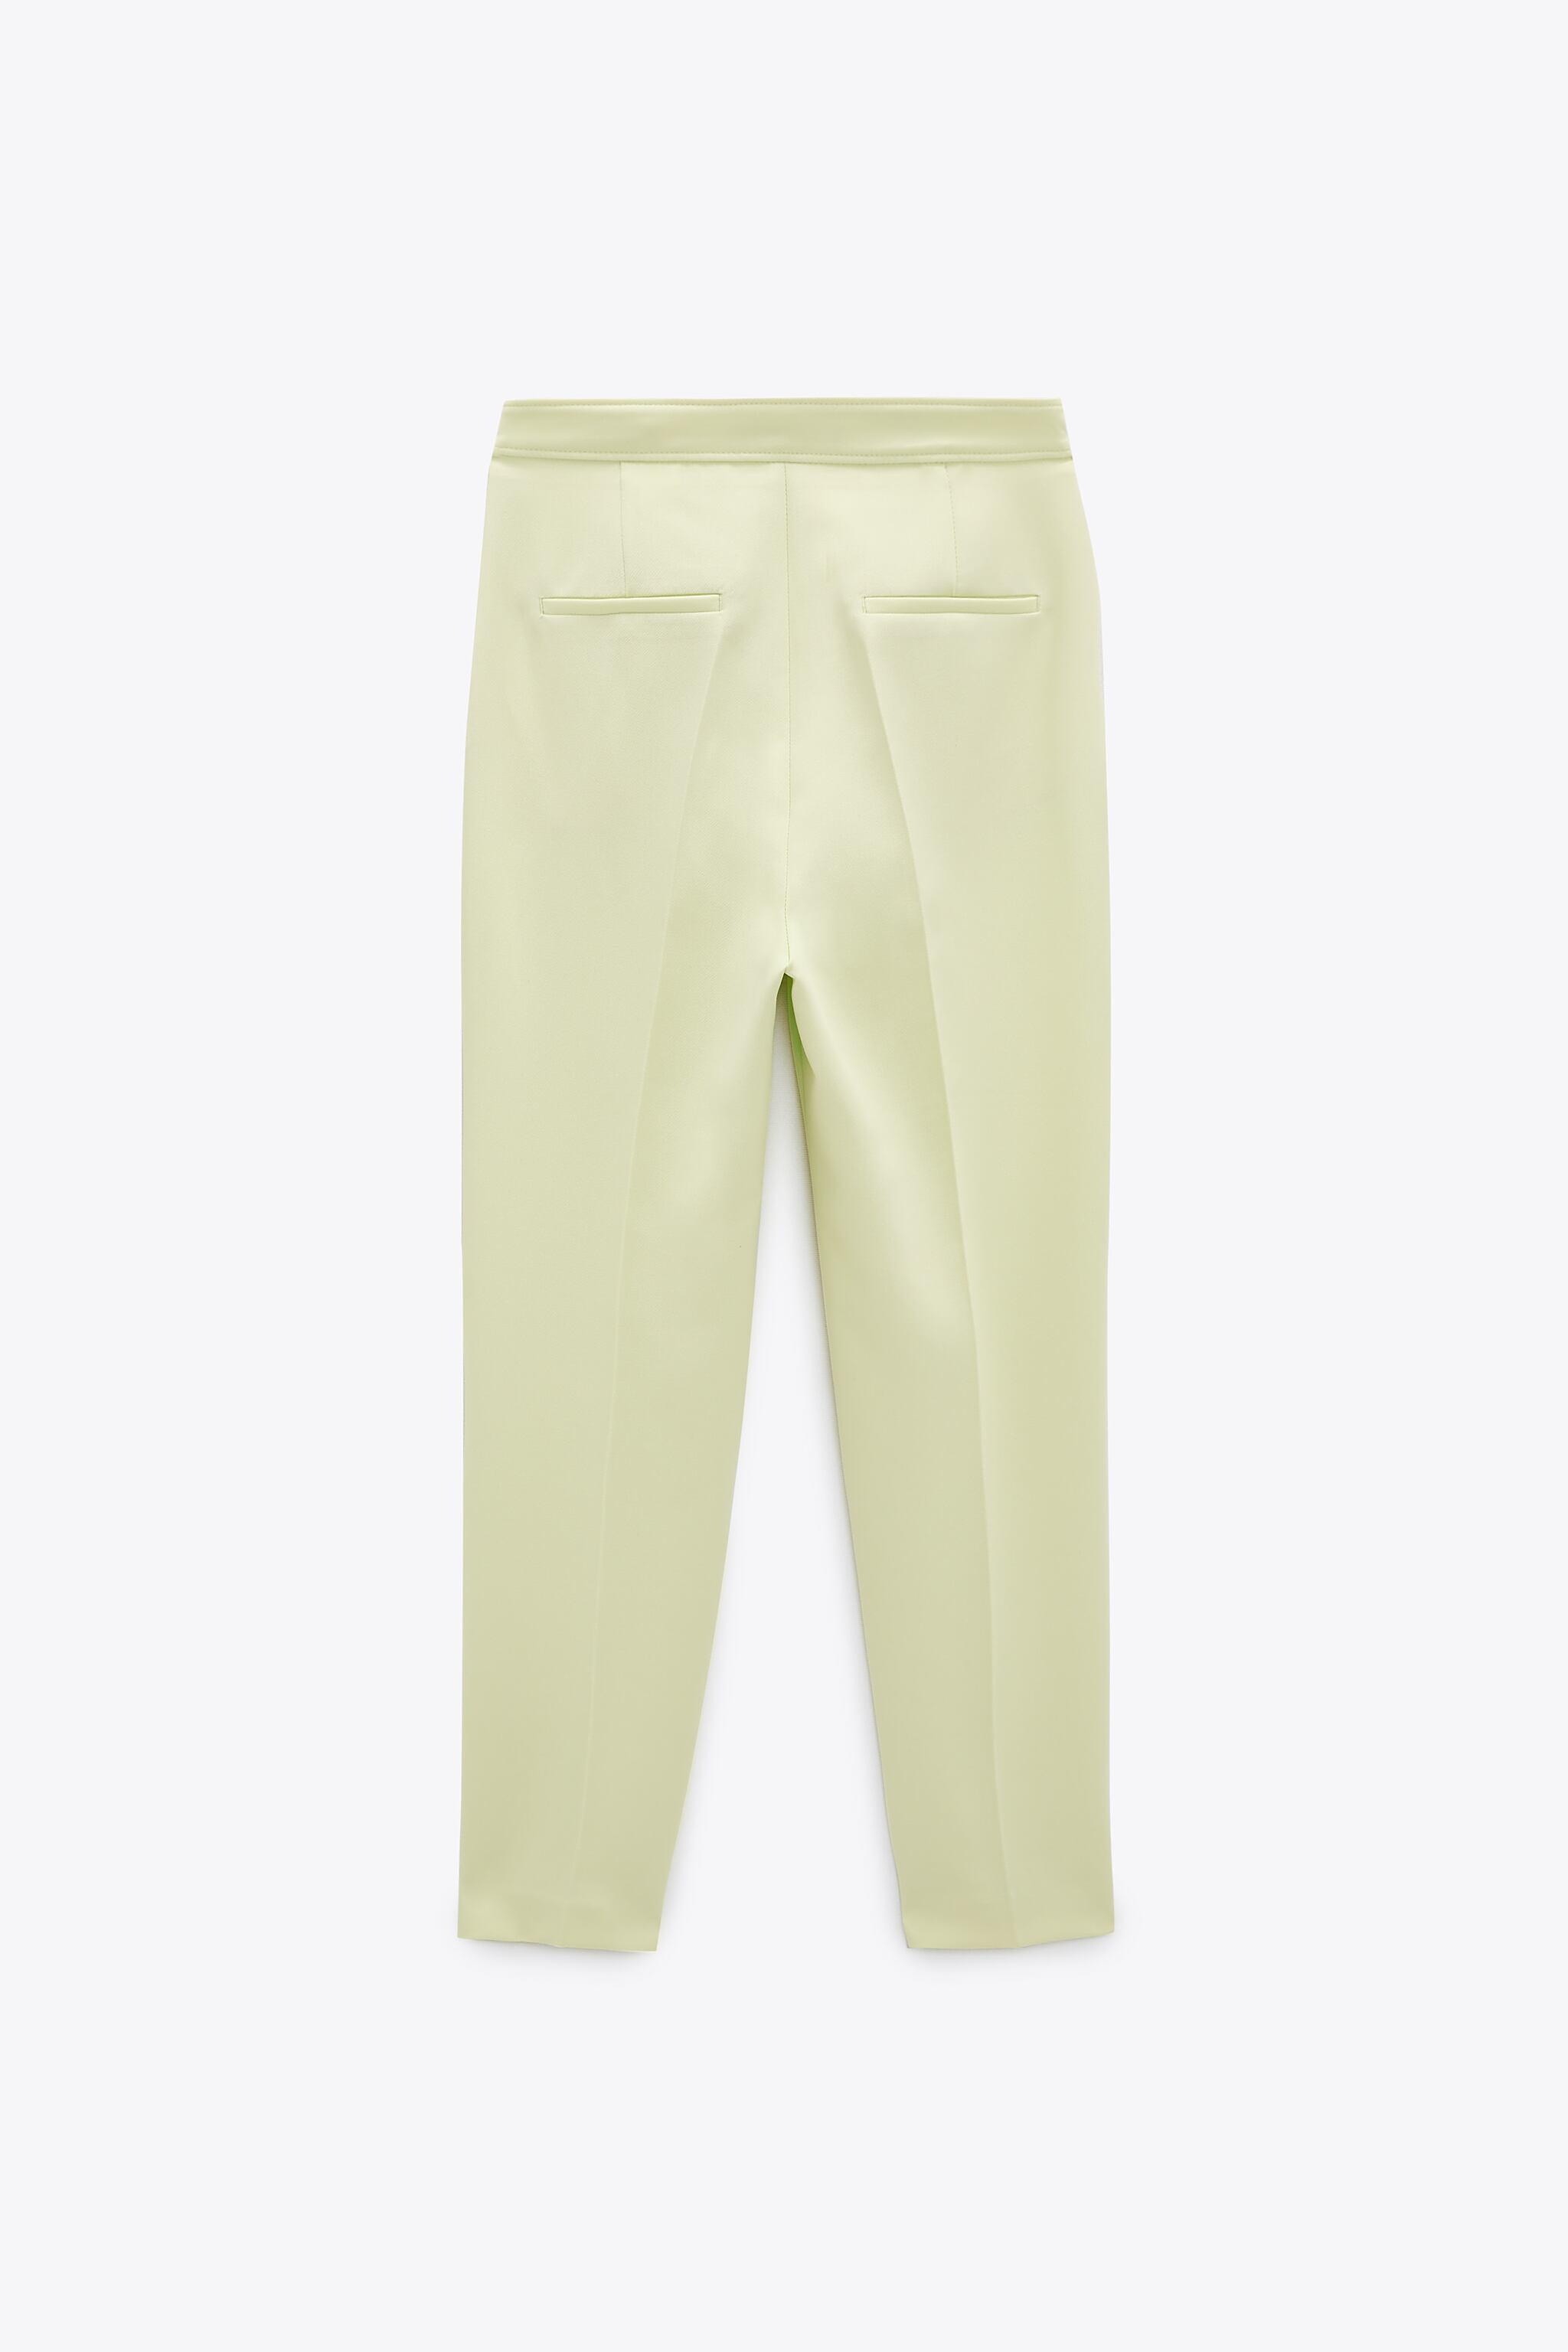 BUTTONED PANTS WITH BELT 5